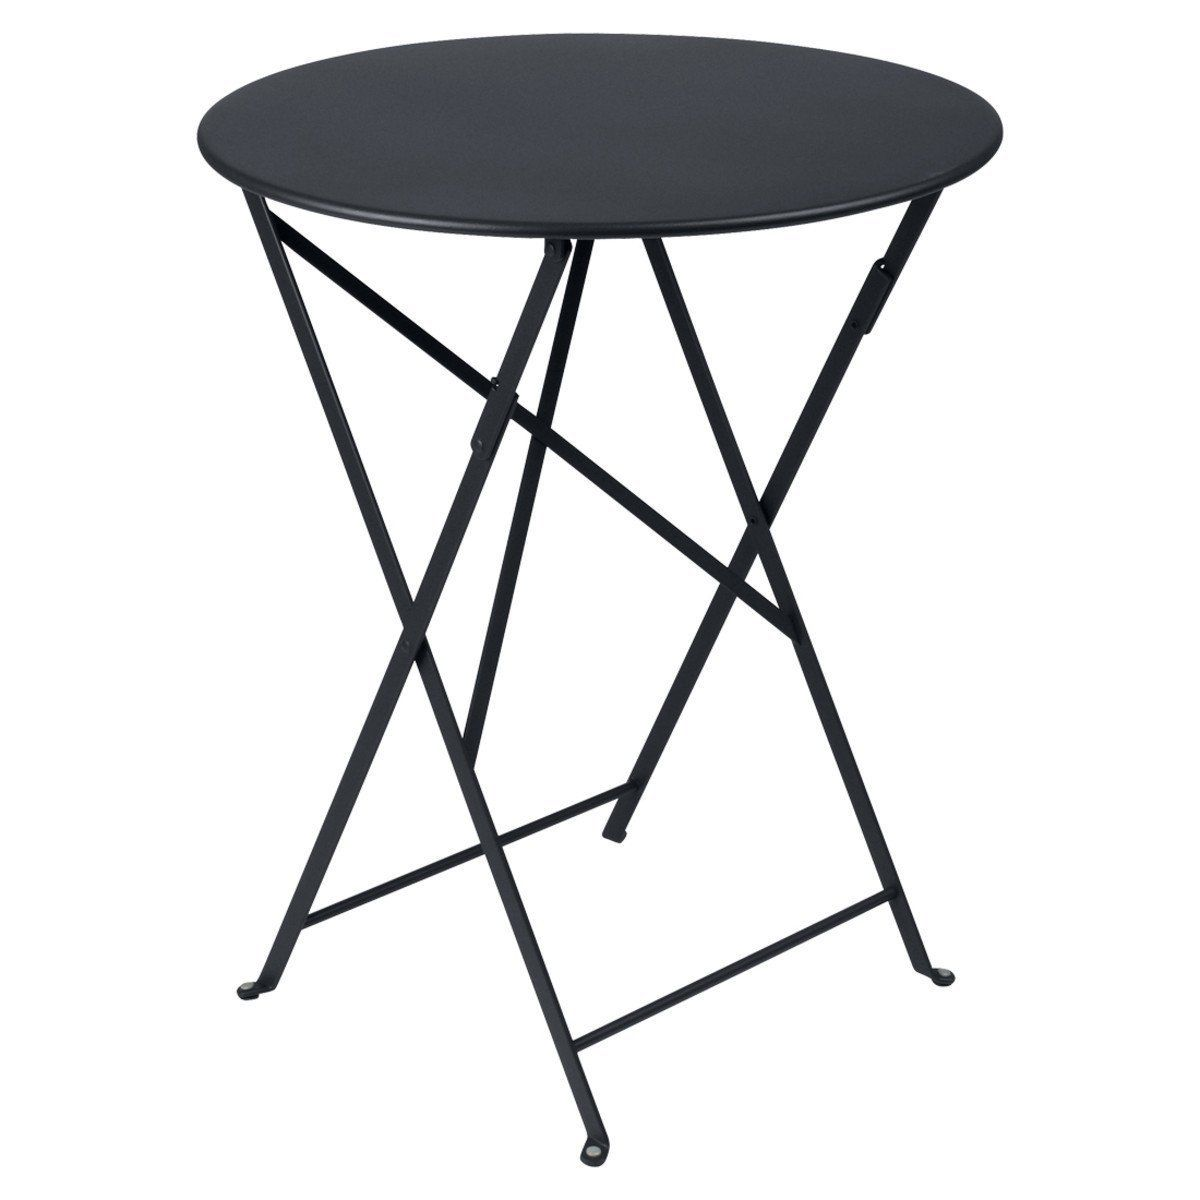 Bistro Folding Round Table Products In 2019 Round Folding